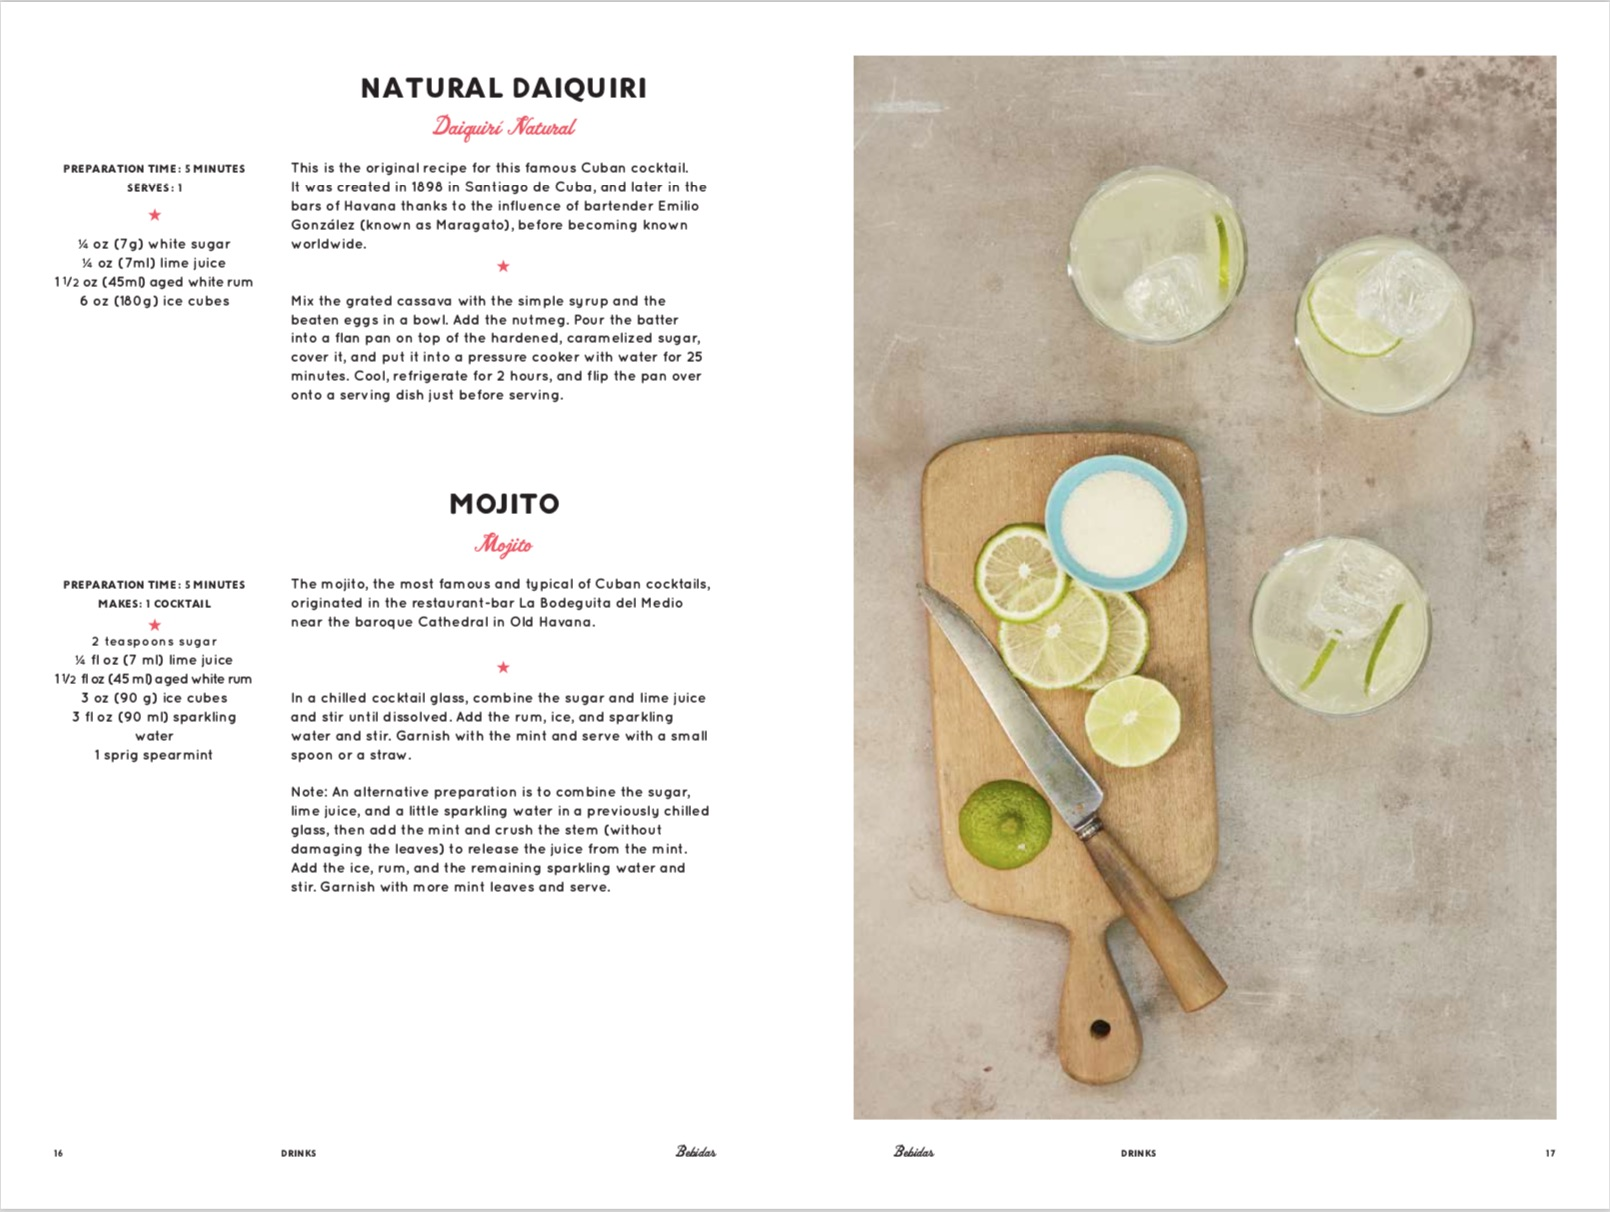 By Madelaine Vázquez Gálvez, Imogene Tondre from Cuba: The Cookbook copyright Phaidon 2018